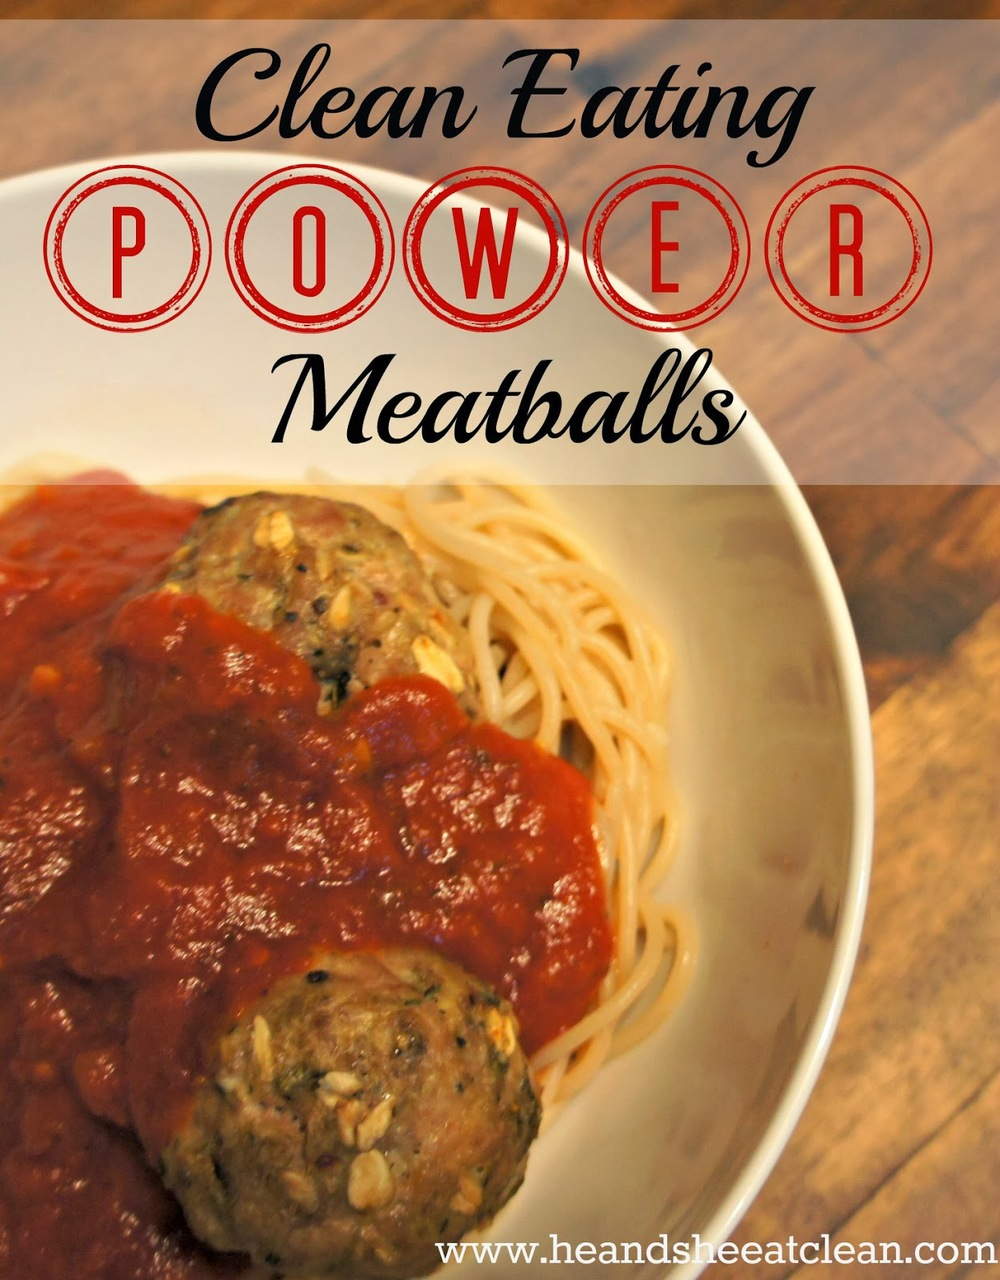 clean-eating-eat-power-meat-ball-meatballs-recipe-spaghetti-brown-rice-pasta-sauce-comfort-food-he-and-she-eat-clean-spicy-high-protein-baked-no-regrets.jpg